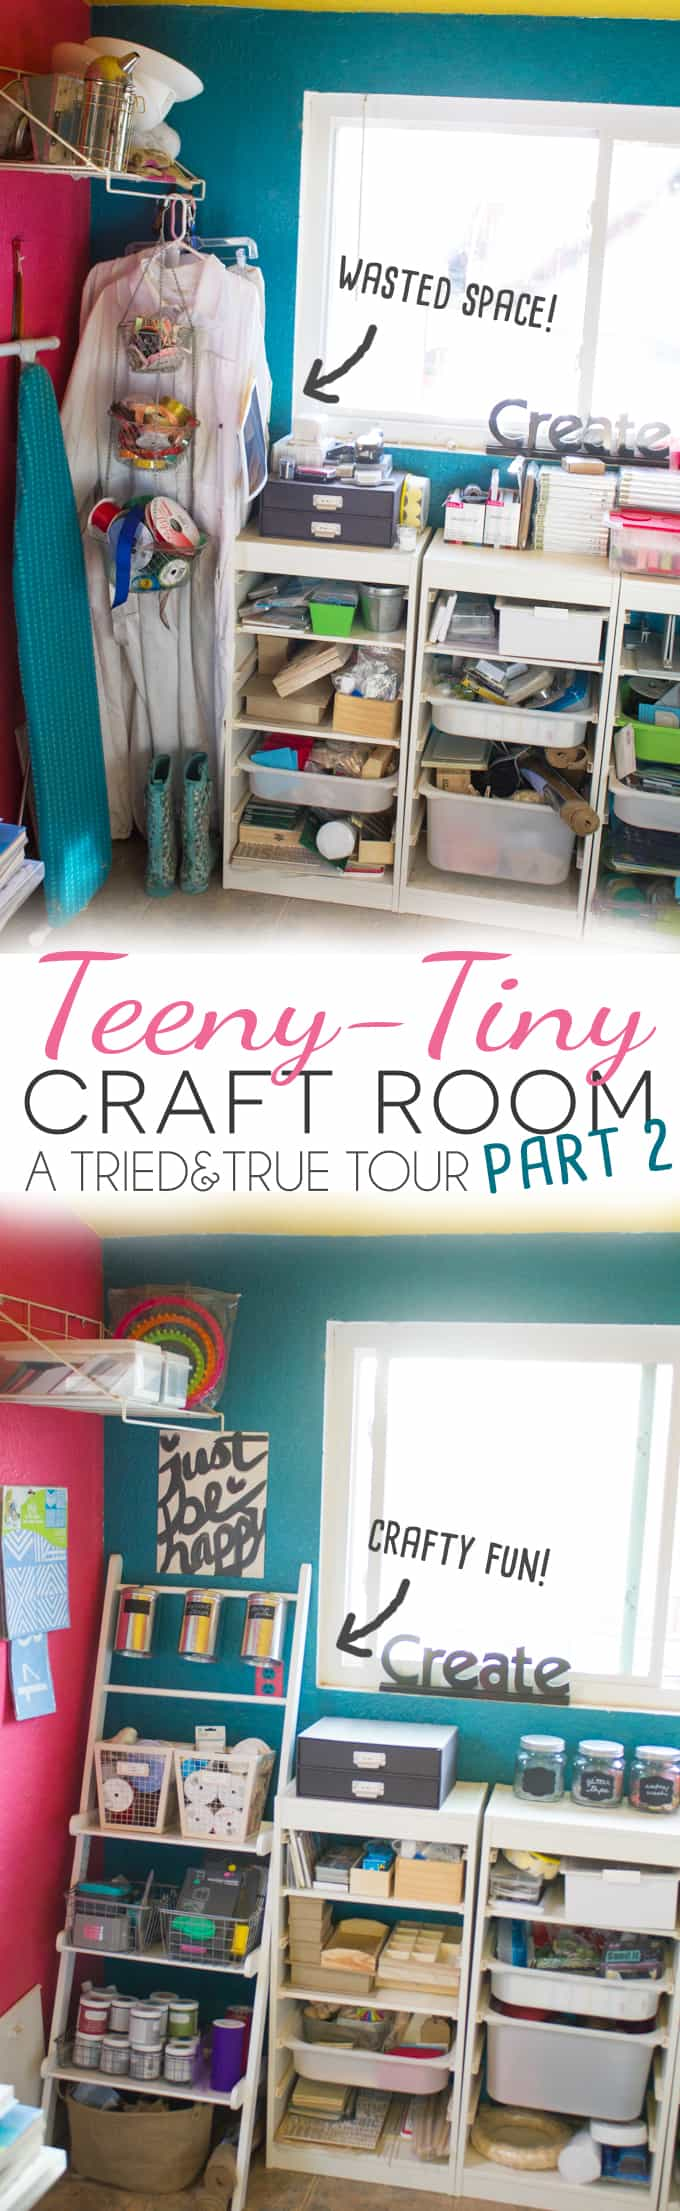 Check out the update to Tried & True's Teeny Tiny Craft Room!